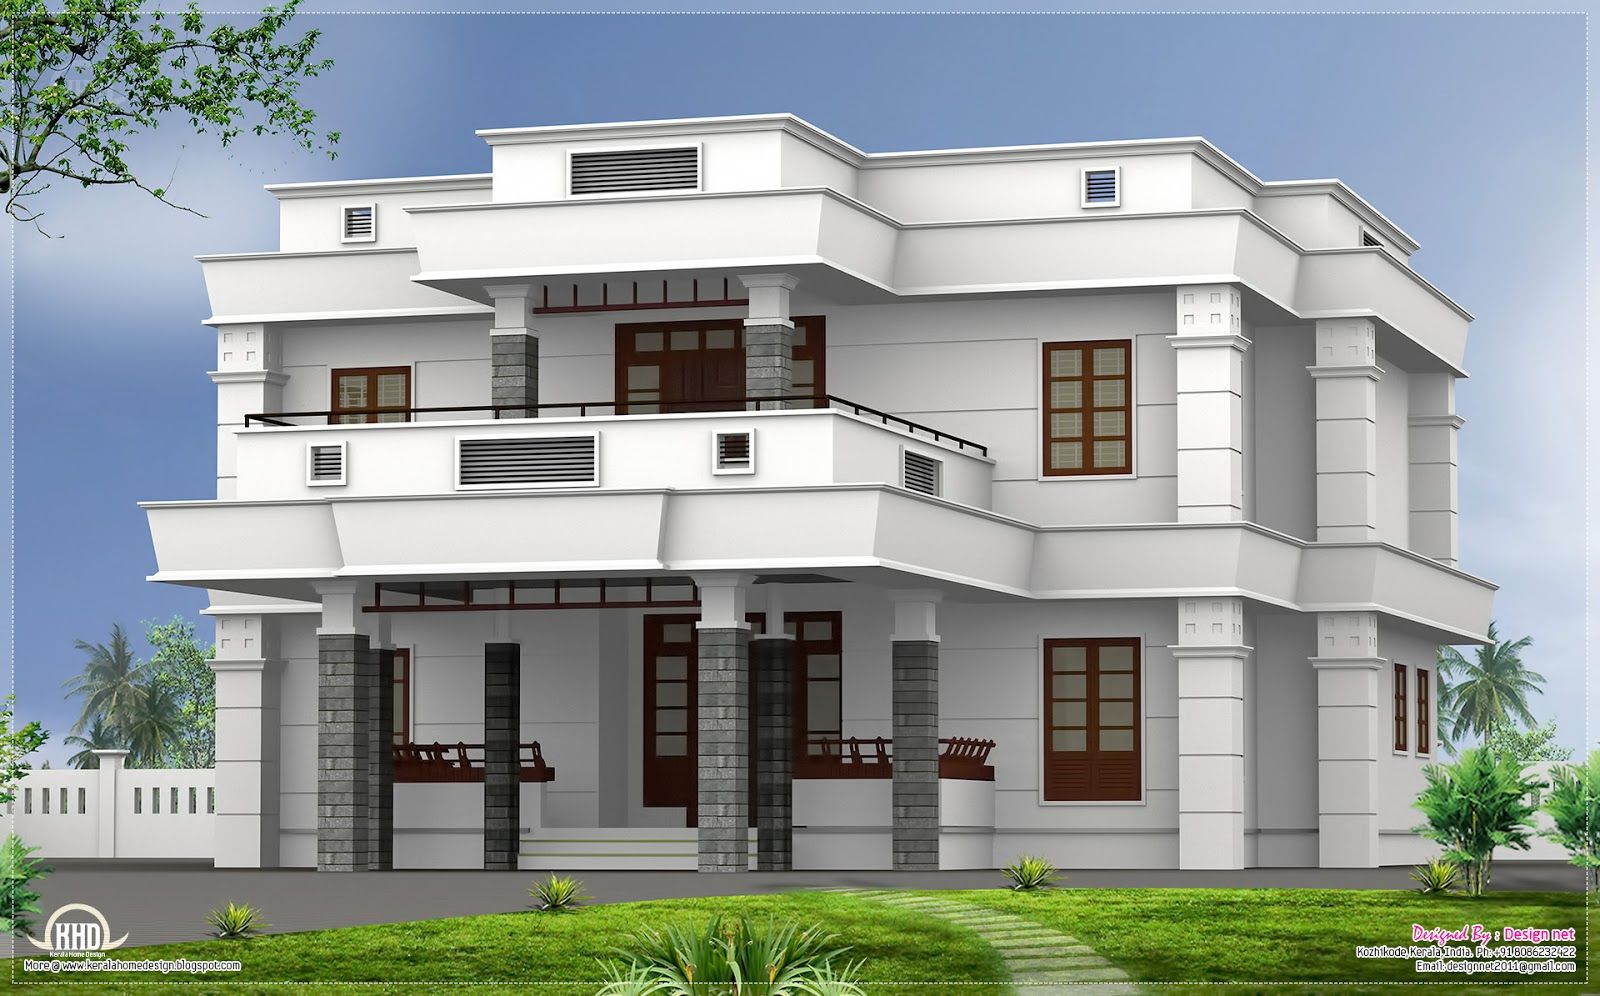 5 Bhk Modern Flat Roof House Design House Roof Design Flat Roof